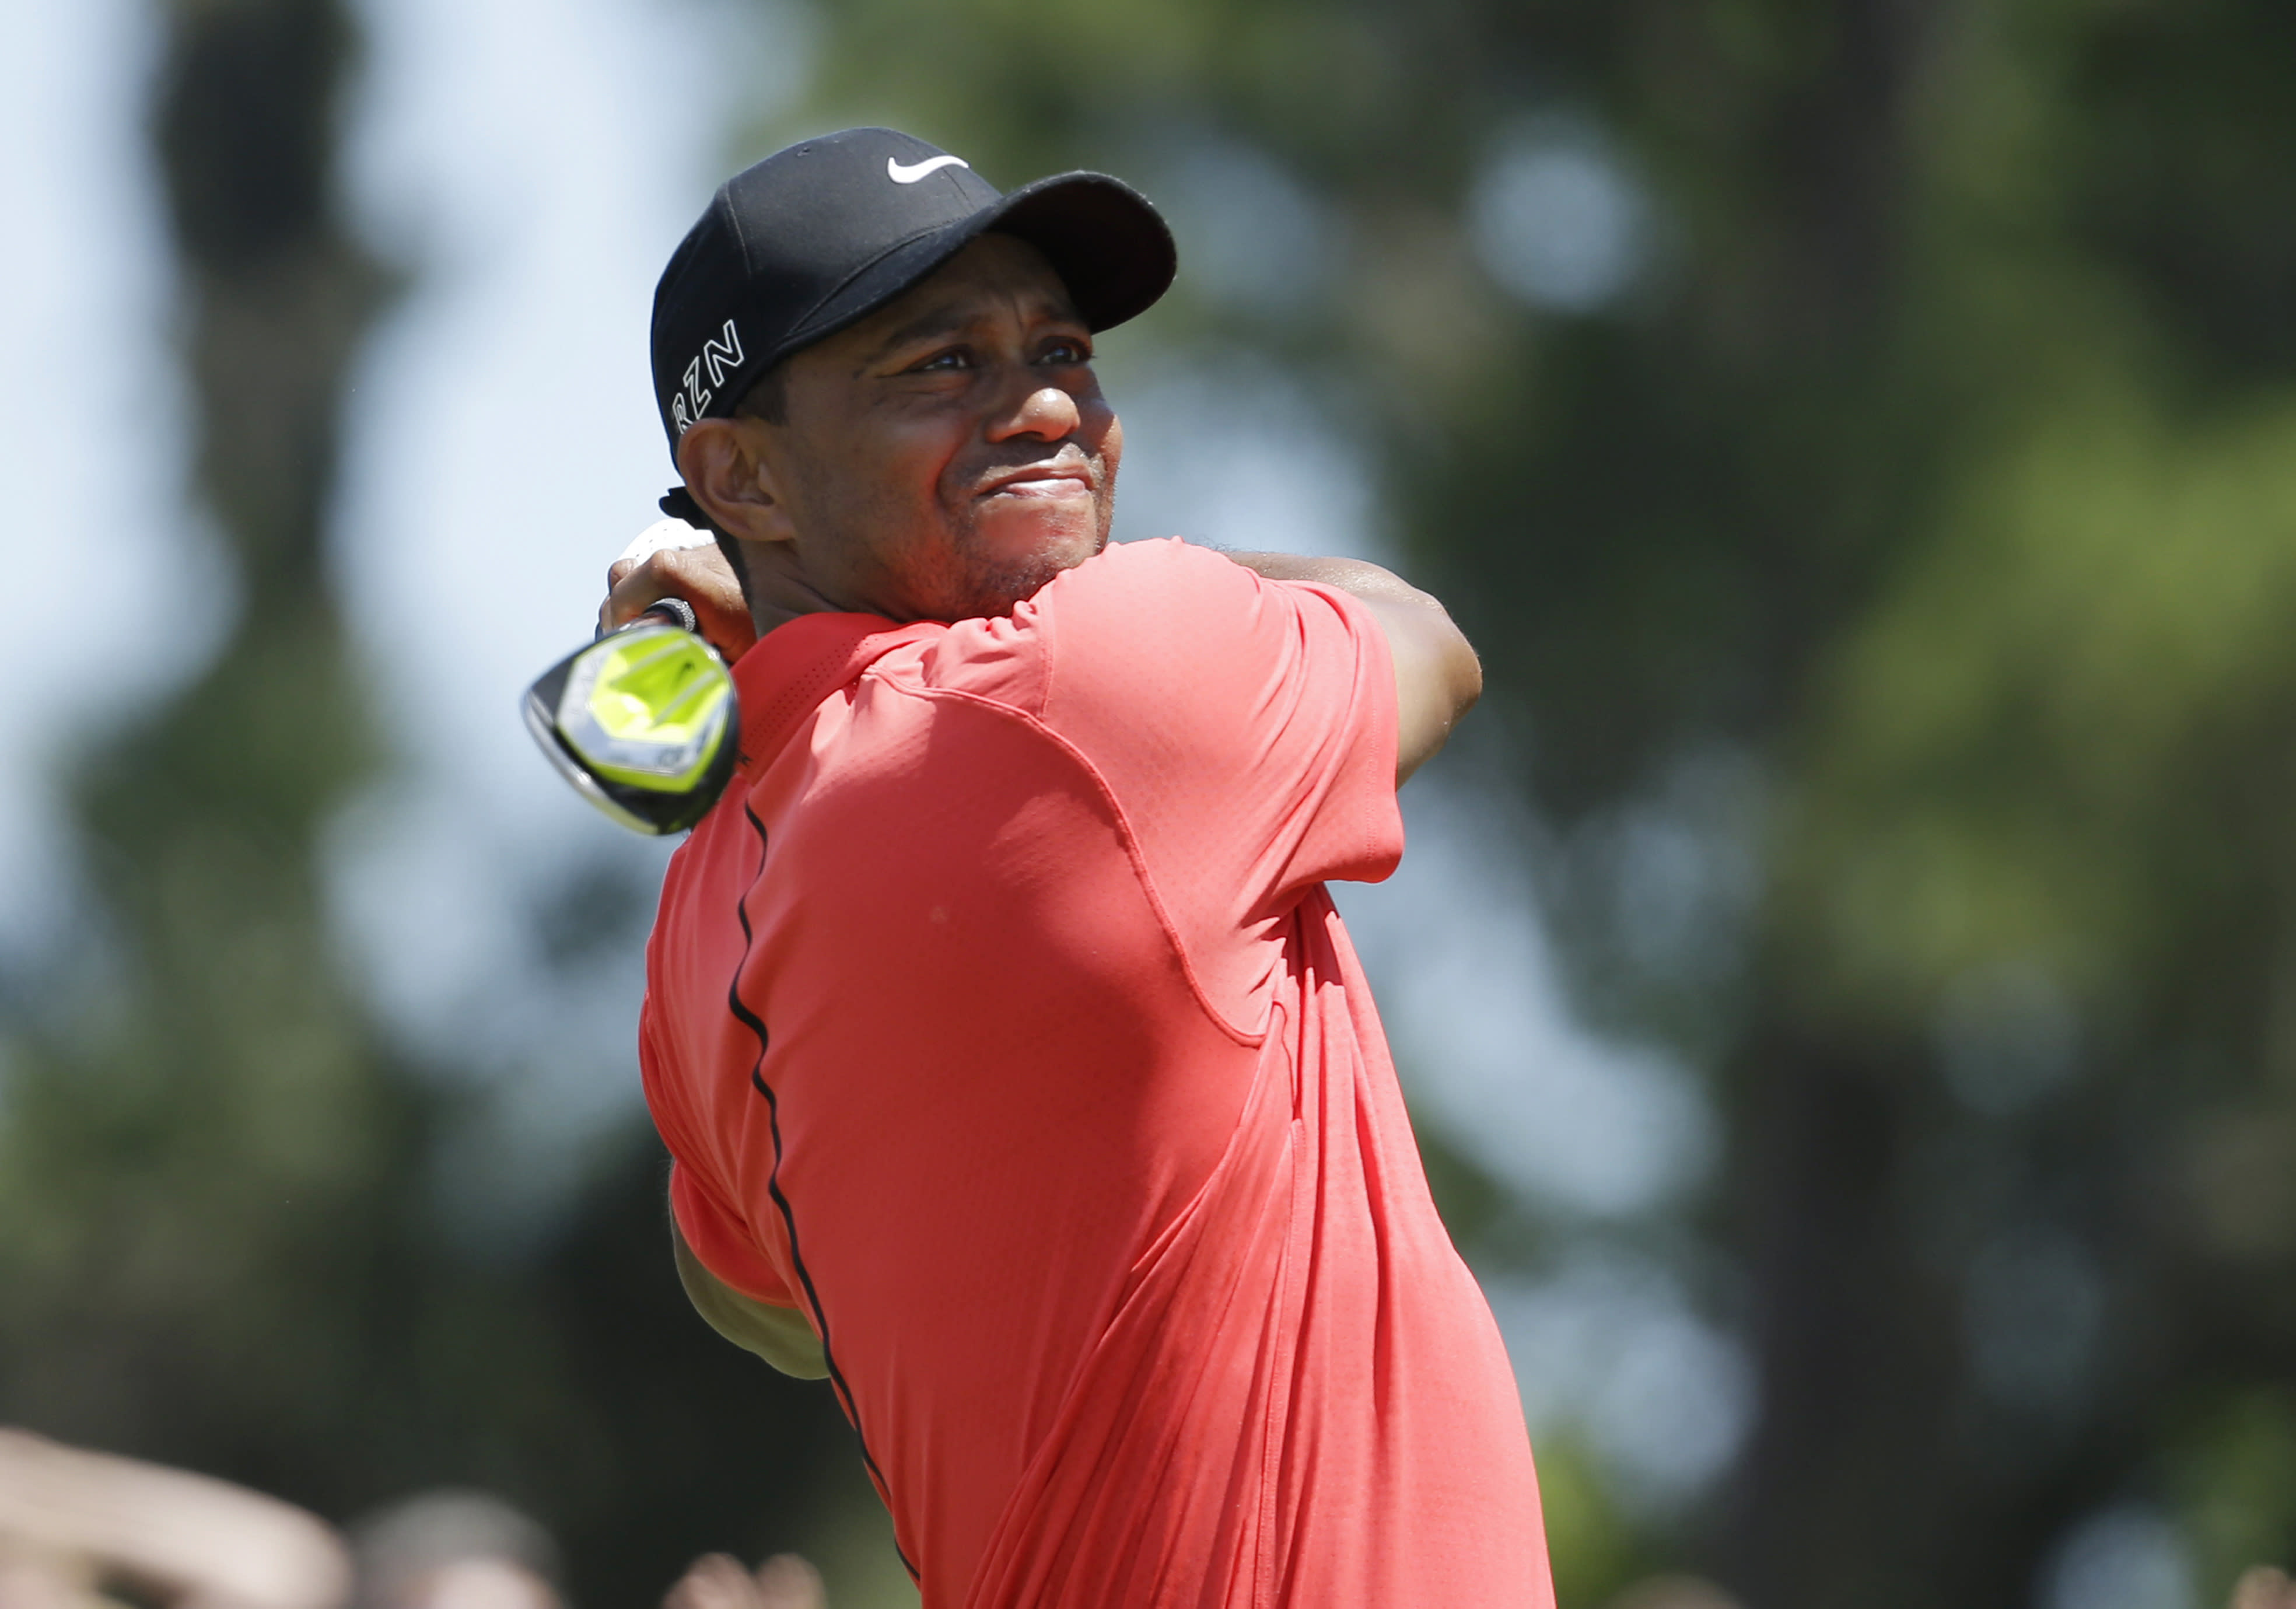 Tiger Woods is in Tacoma, preparing for the U.S. Open